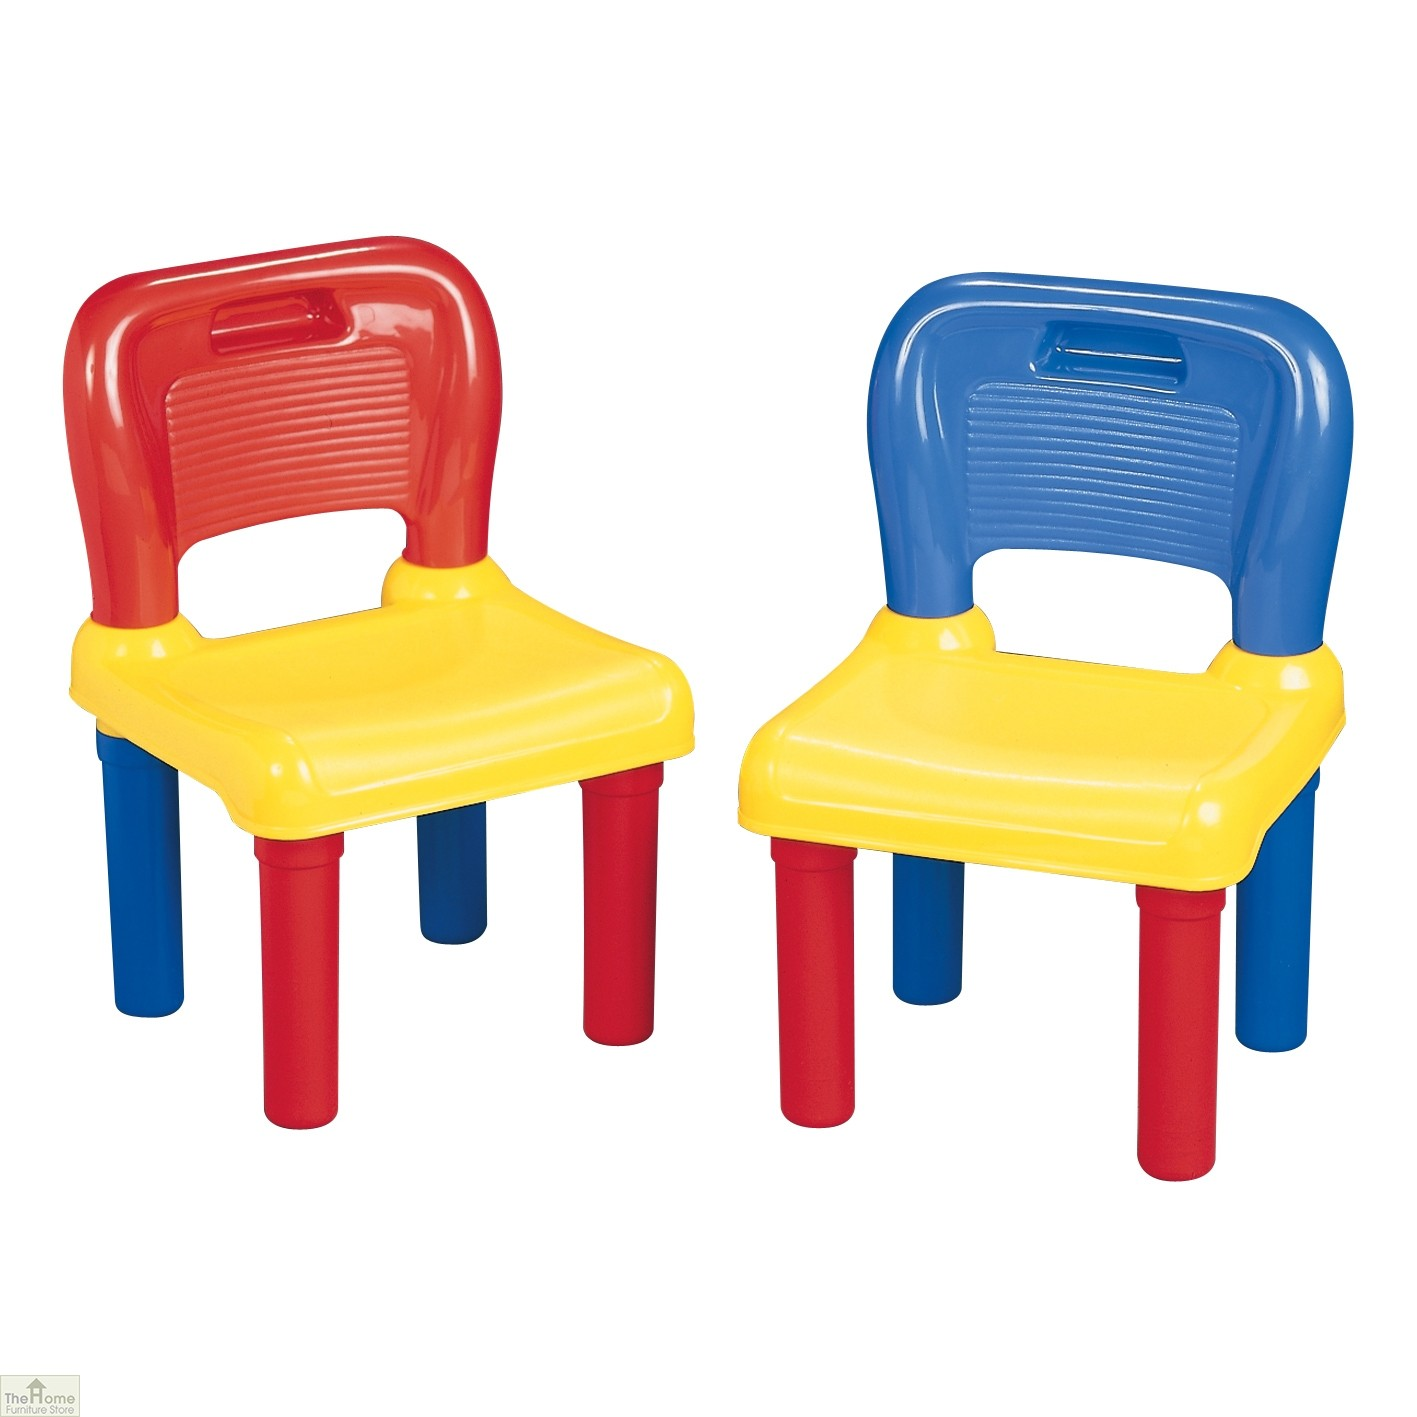 Childrens Colourful Play Chairs